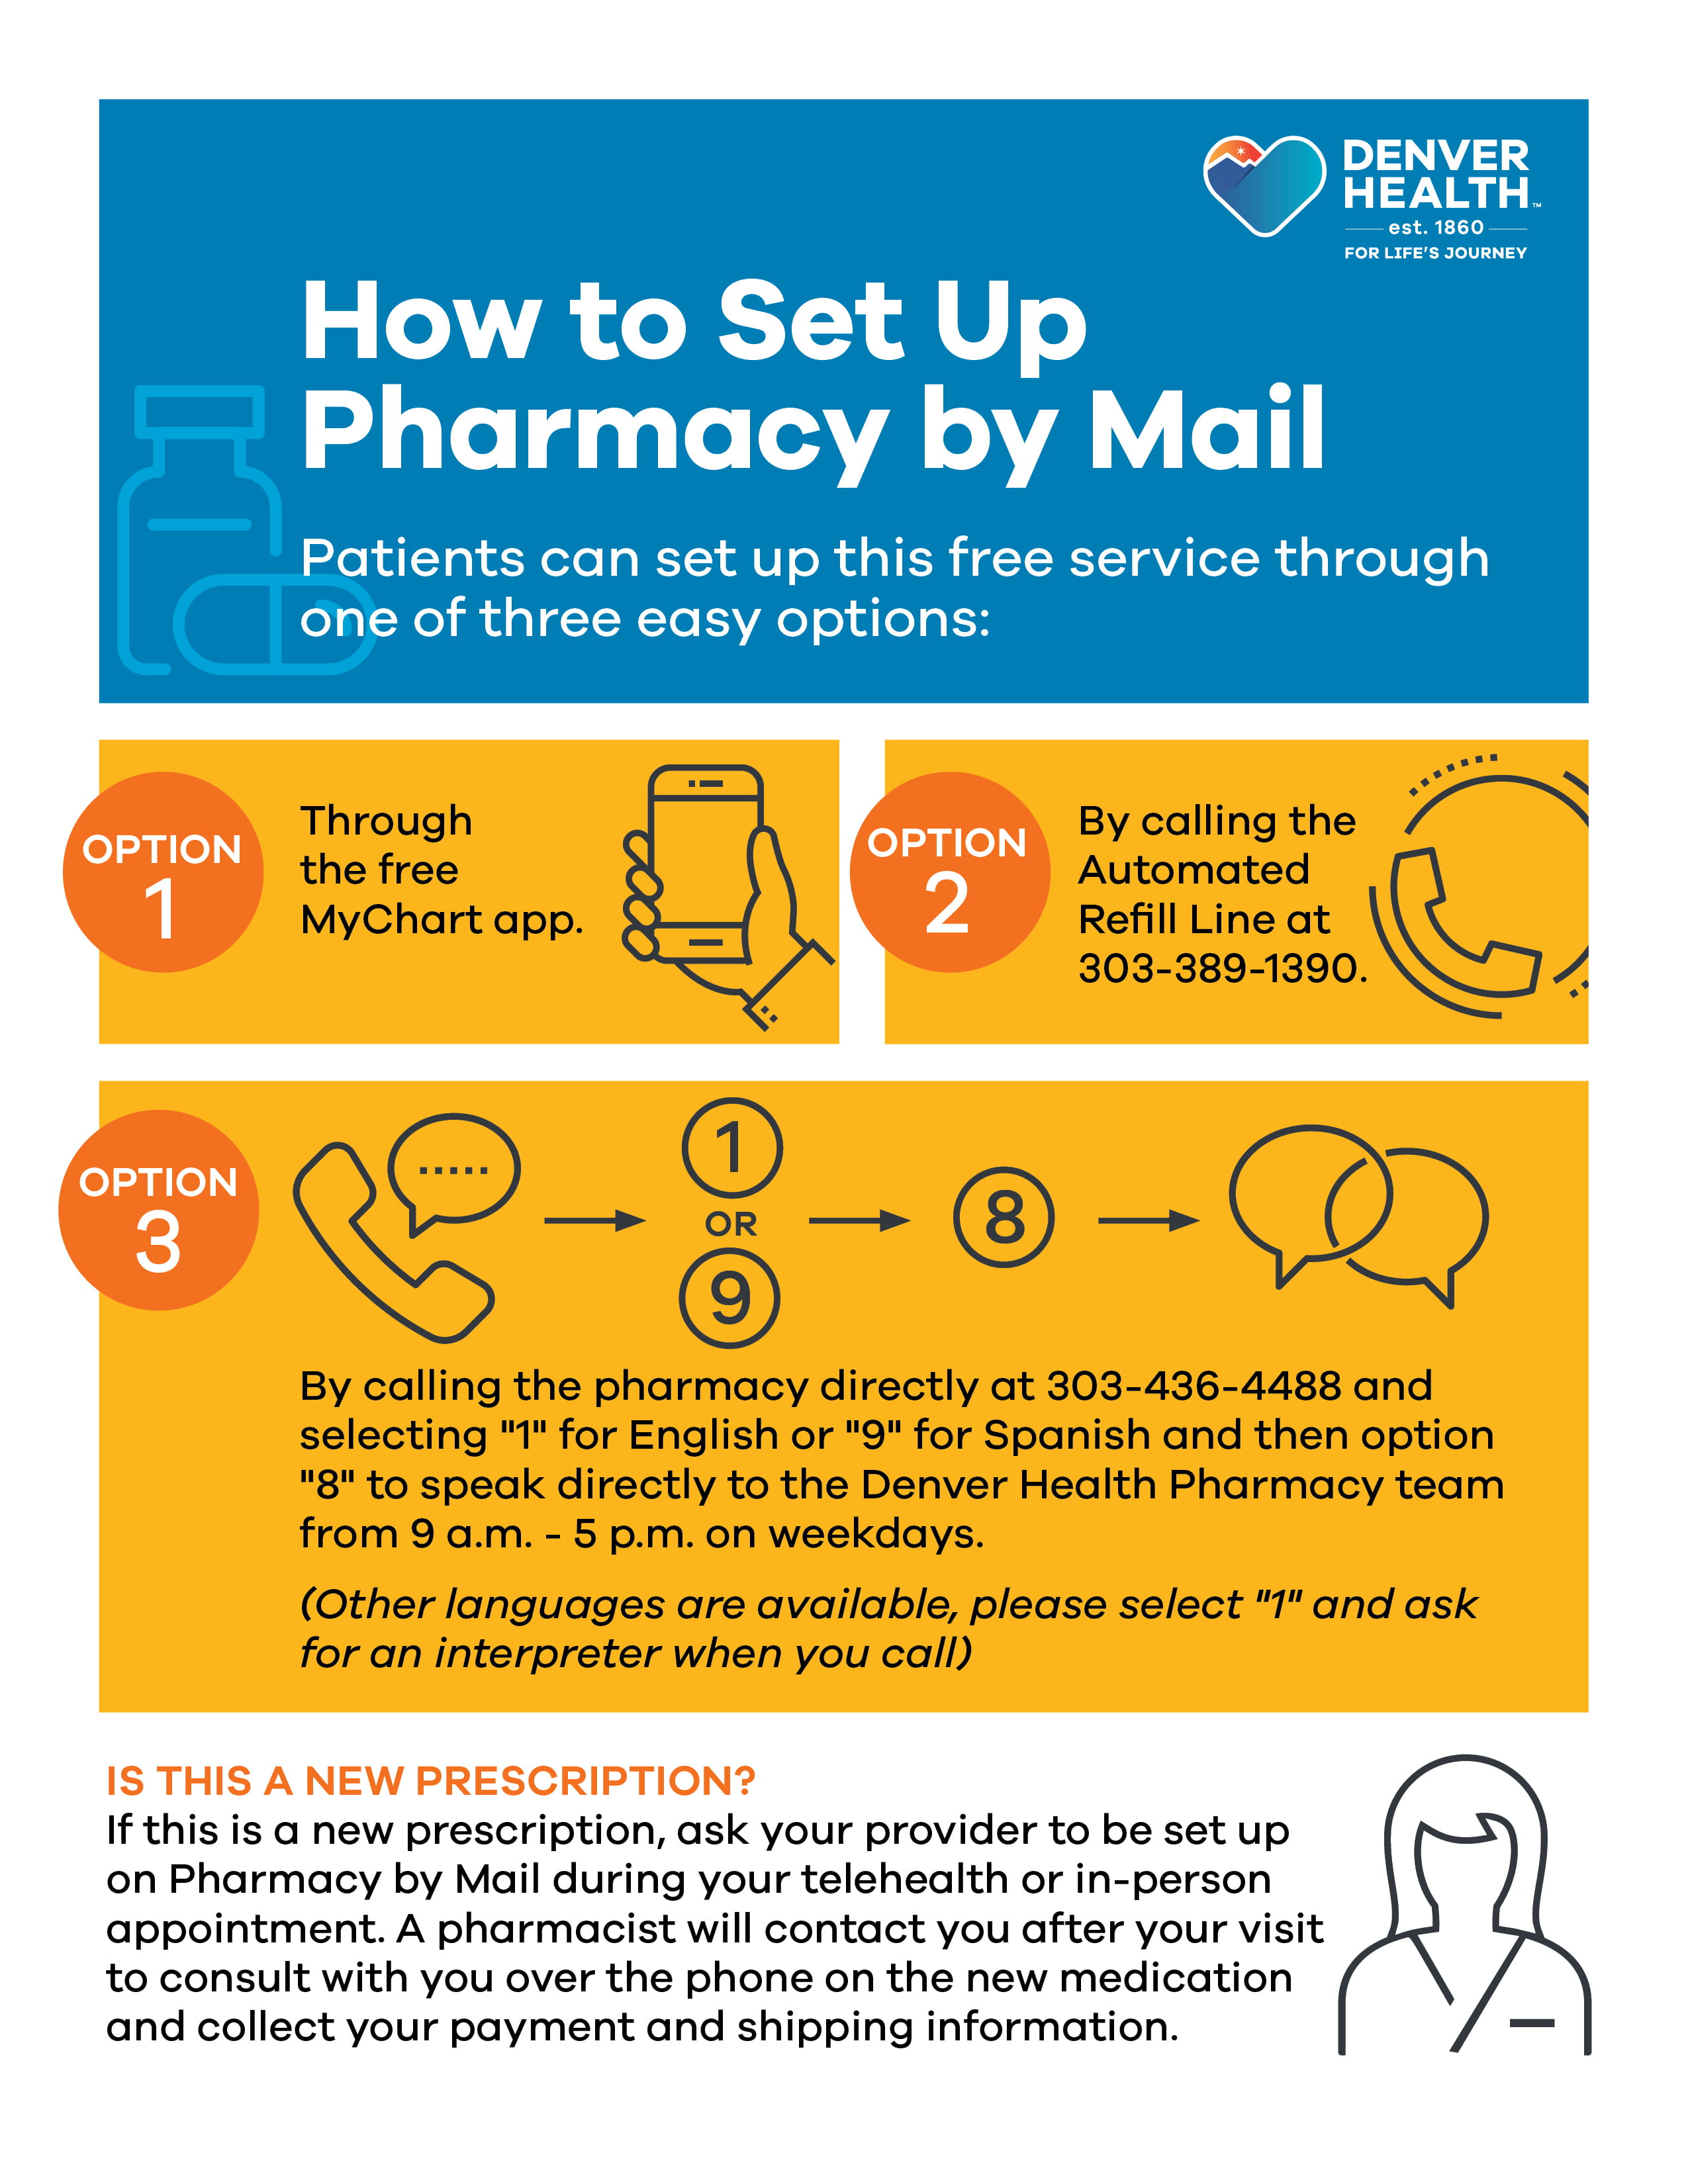 How to enroll in pharmacy by mail at Denver Health